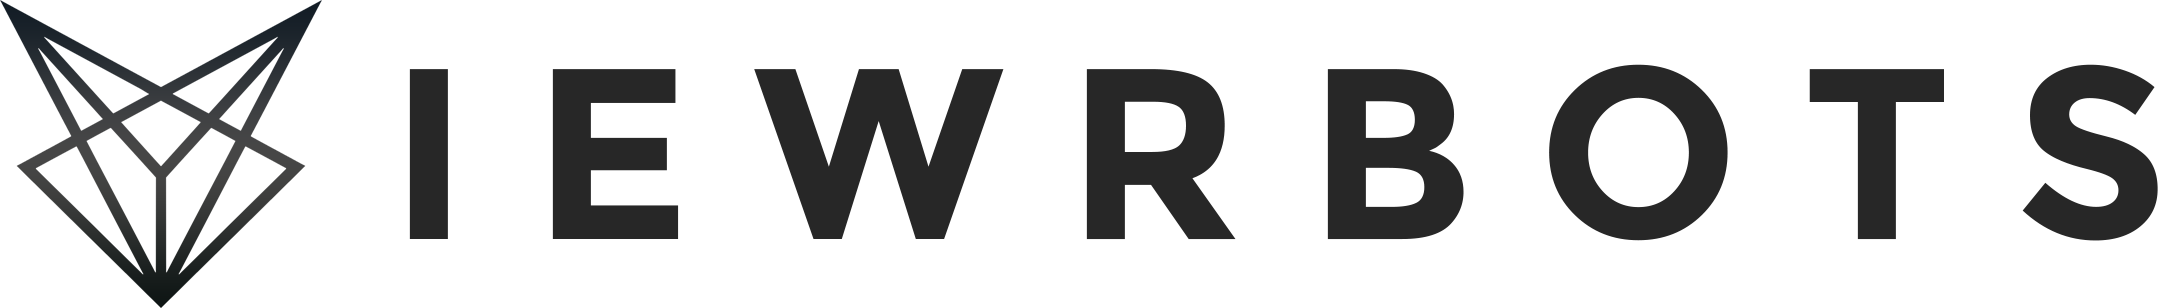 Viewrbots